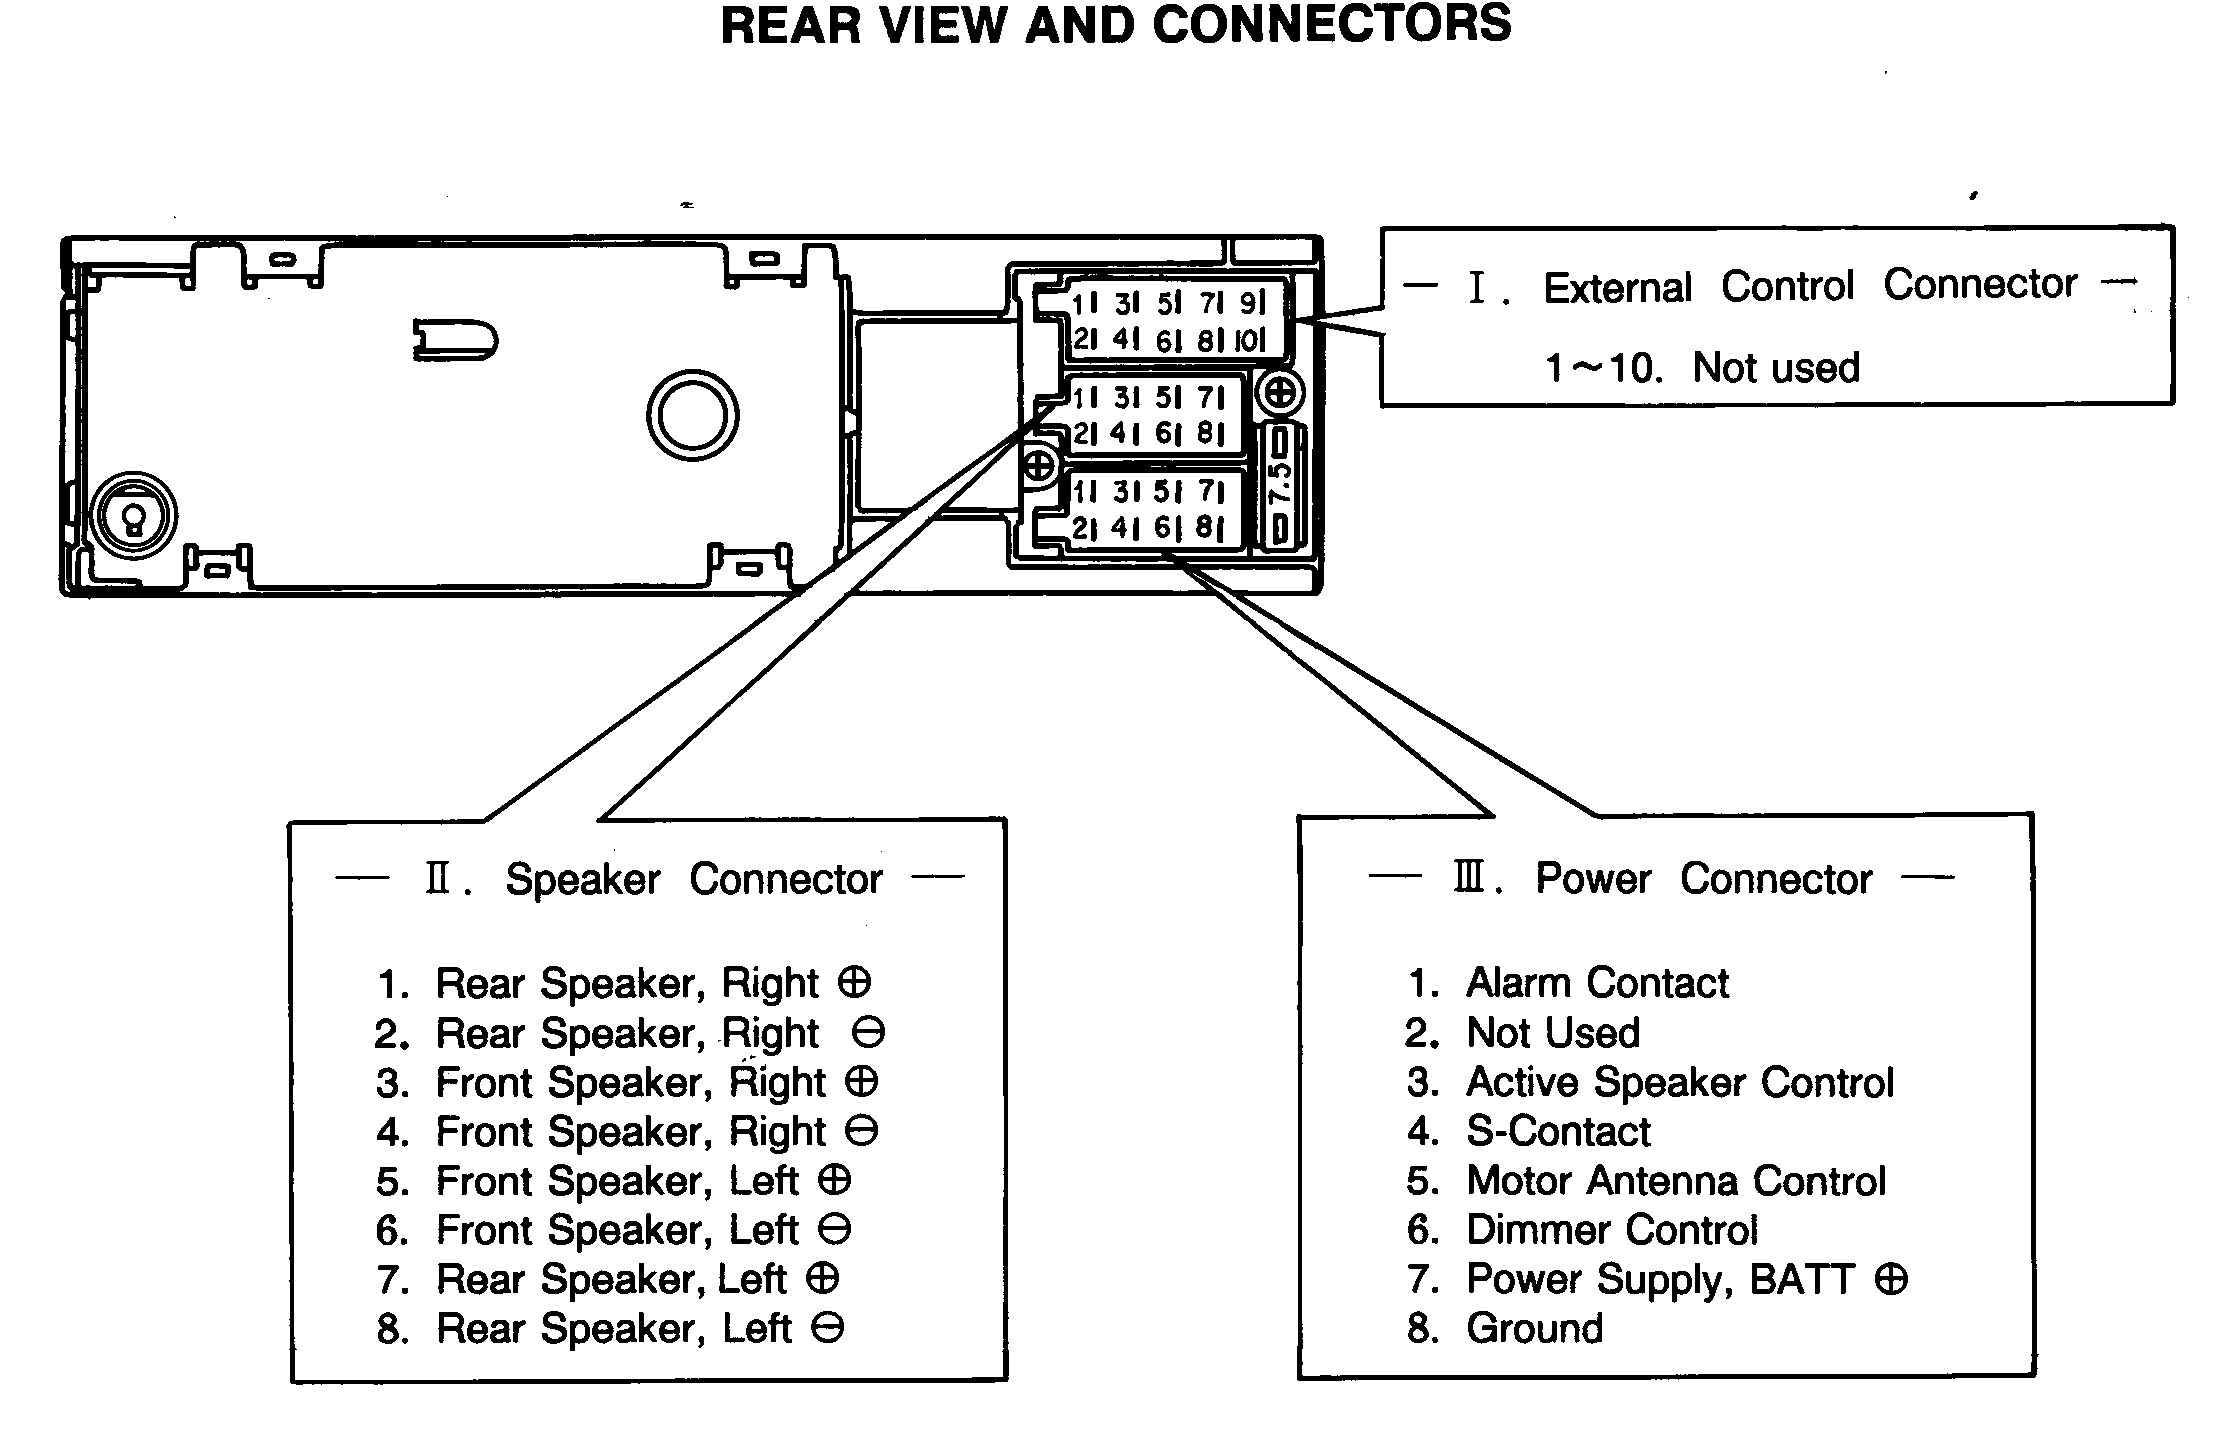 Car stereo wiring diagram newfangled repair wire harness codes bose speaker amplifier